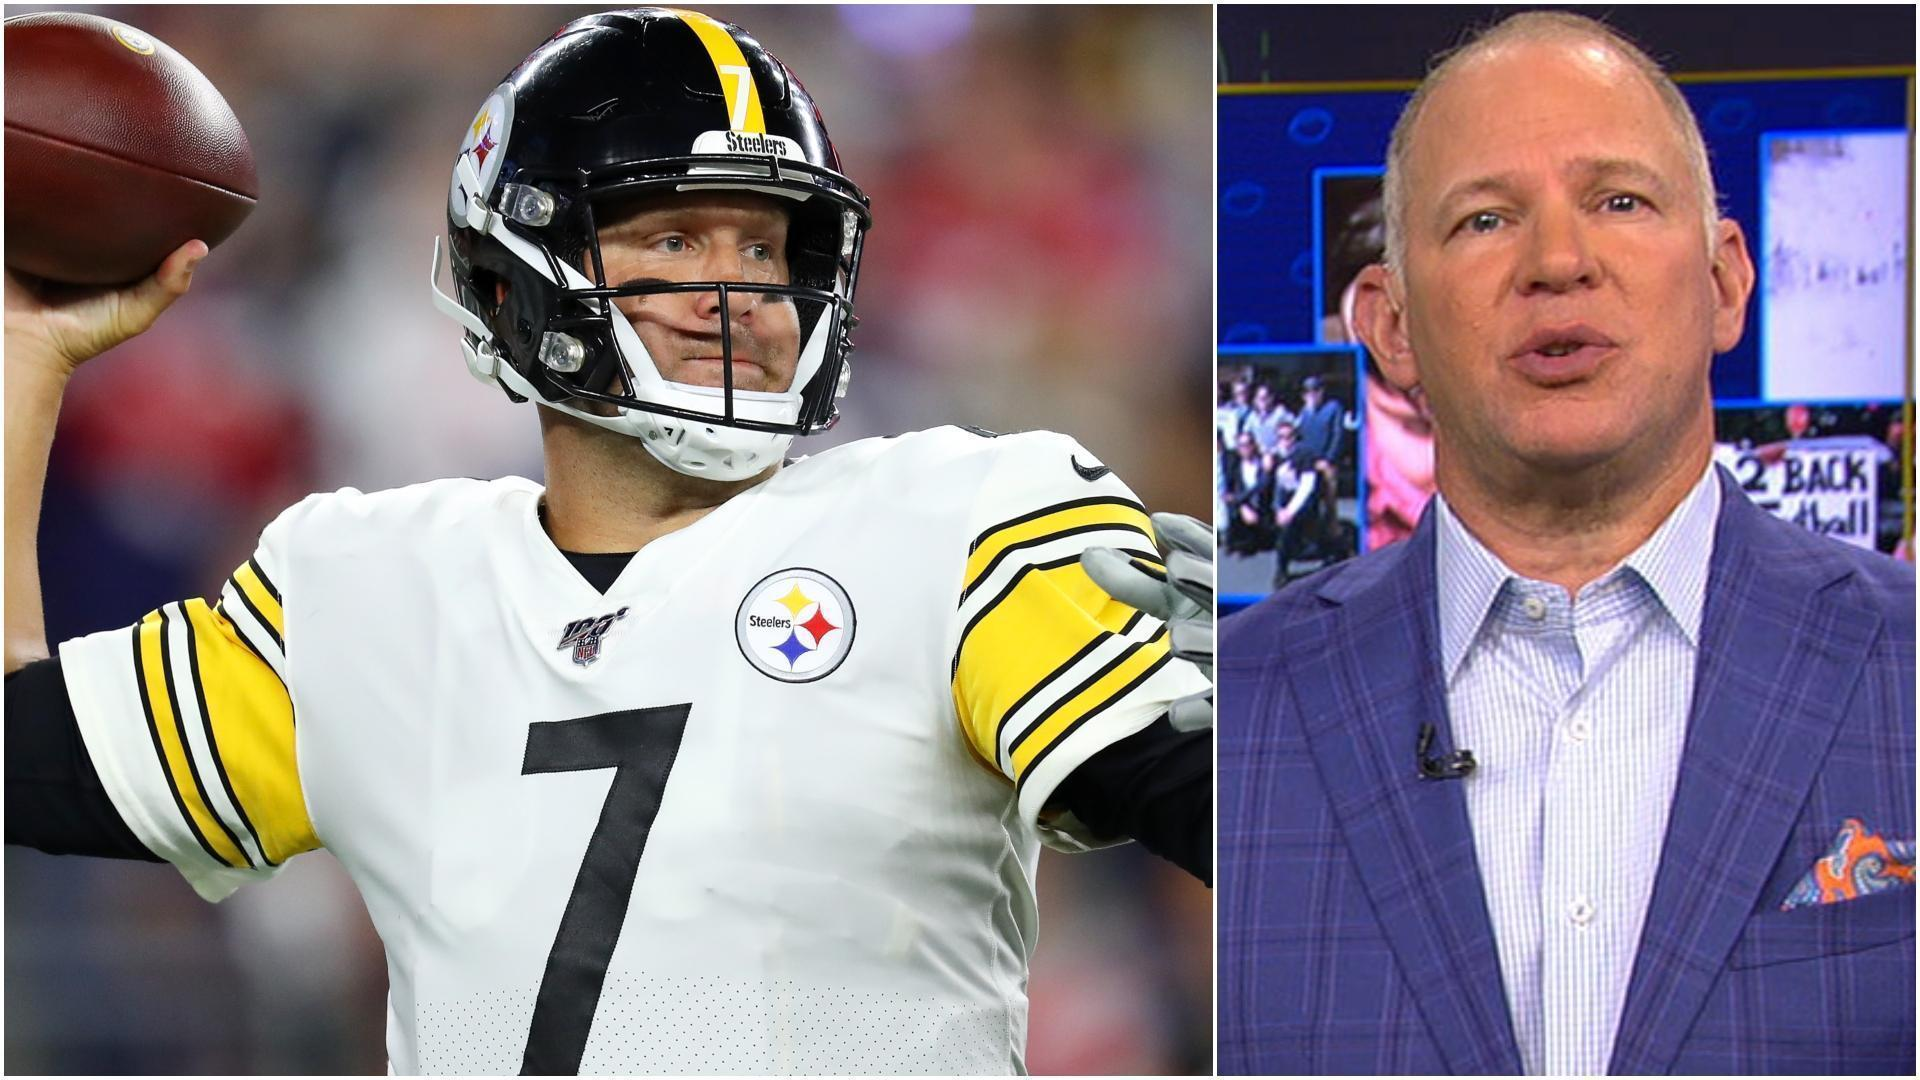 Smith-Schuster's fantasy value will decline without Big Ben